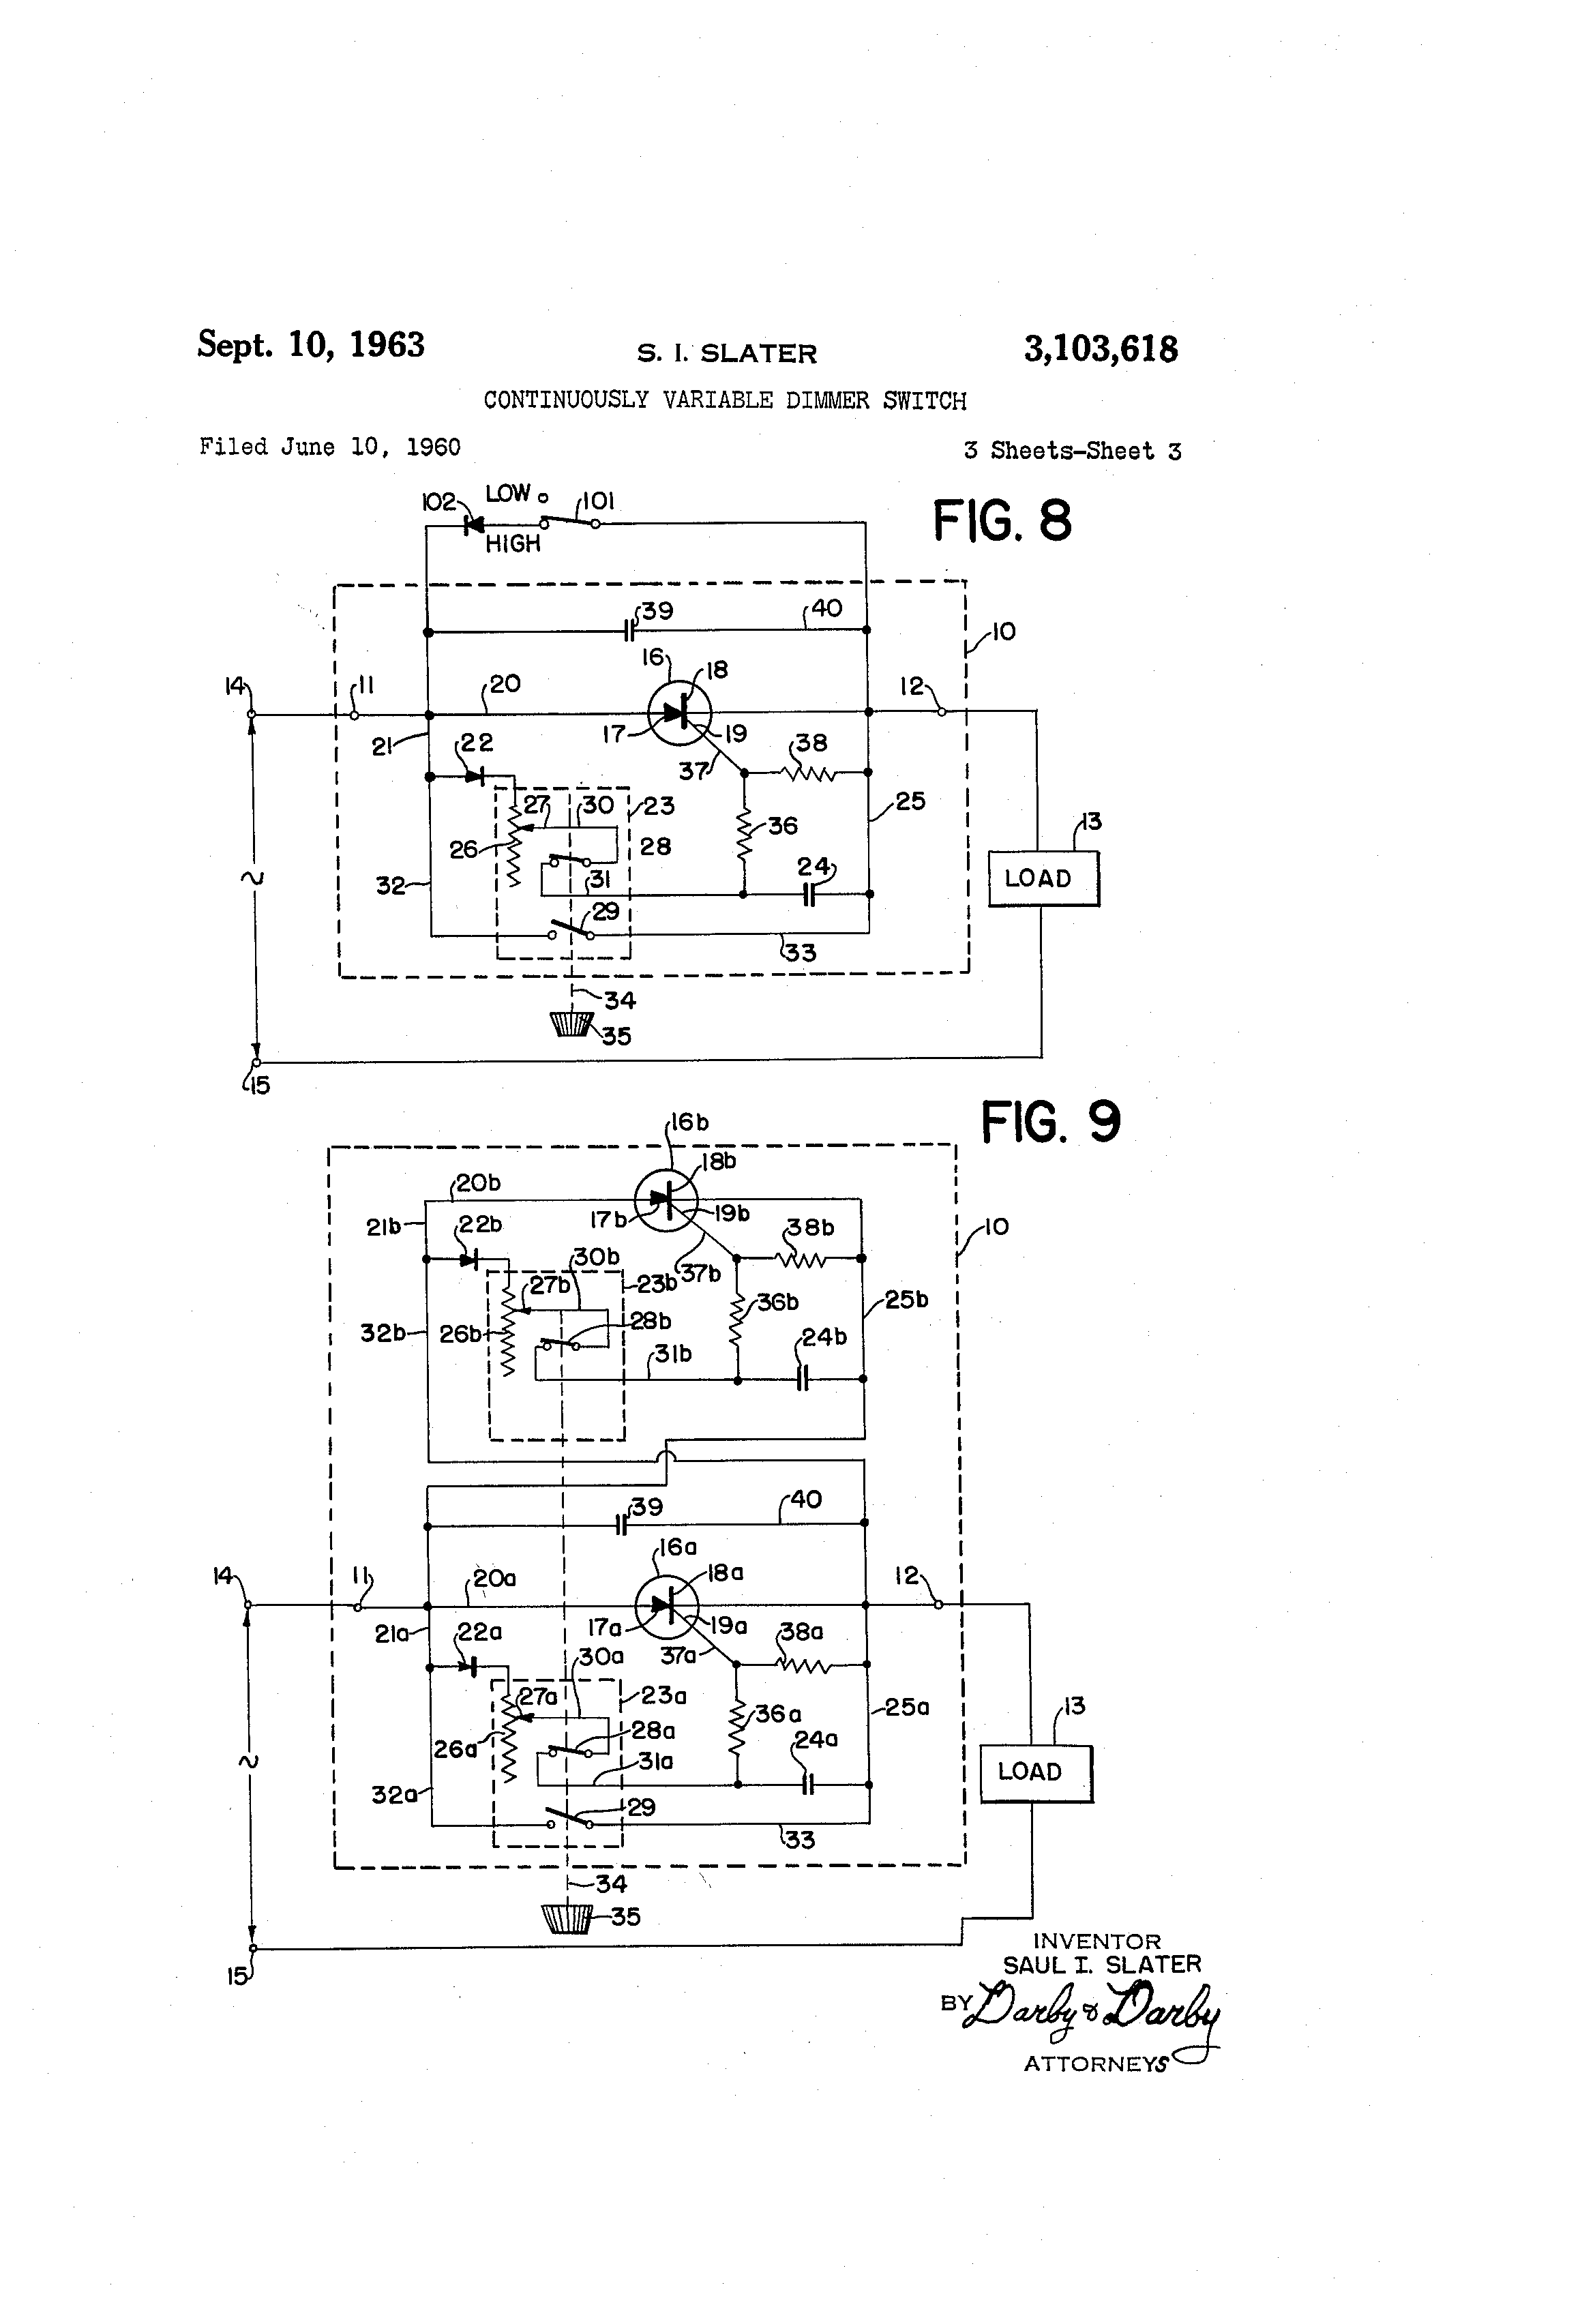 US3103618 2 patent us3103618 continuously variable dimmer switch google warrick controls wiring diagrams at gsmx.co